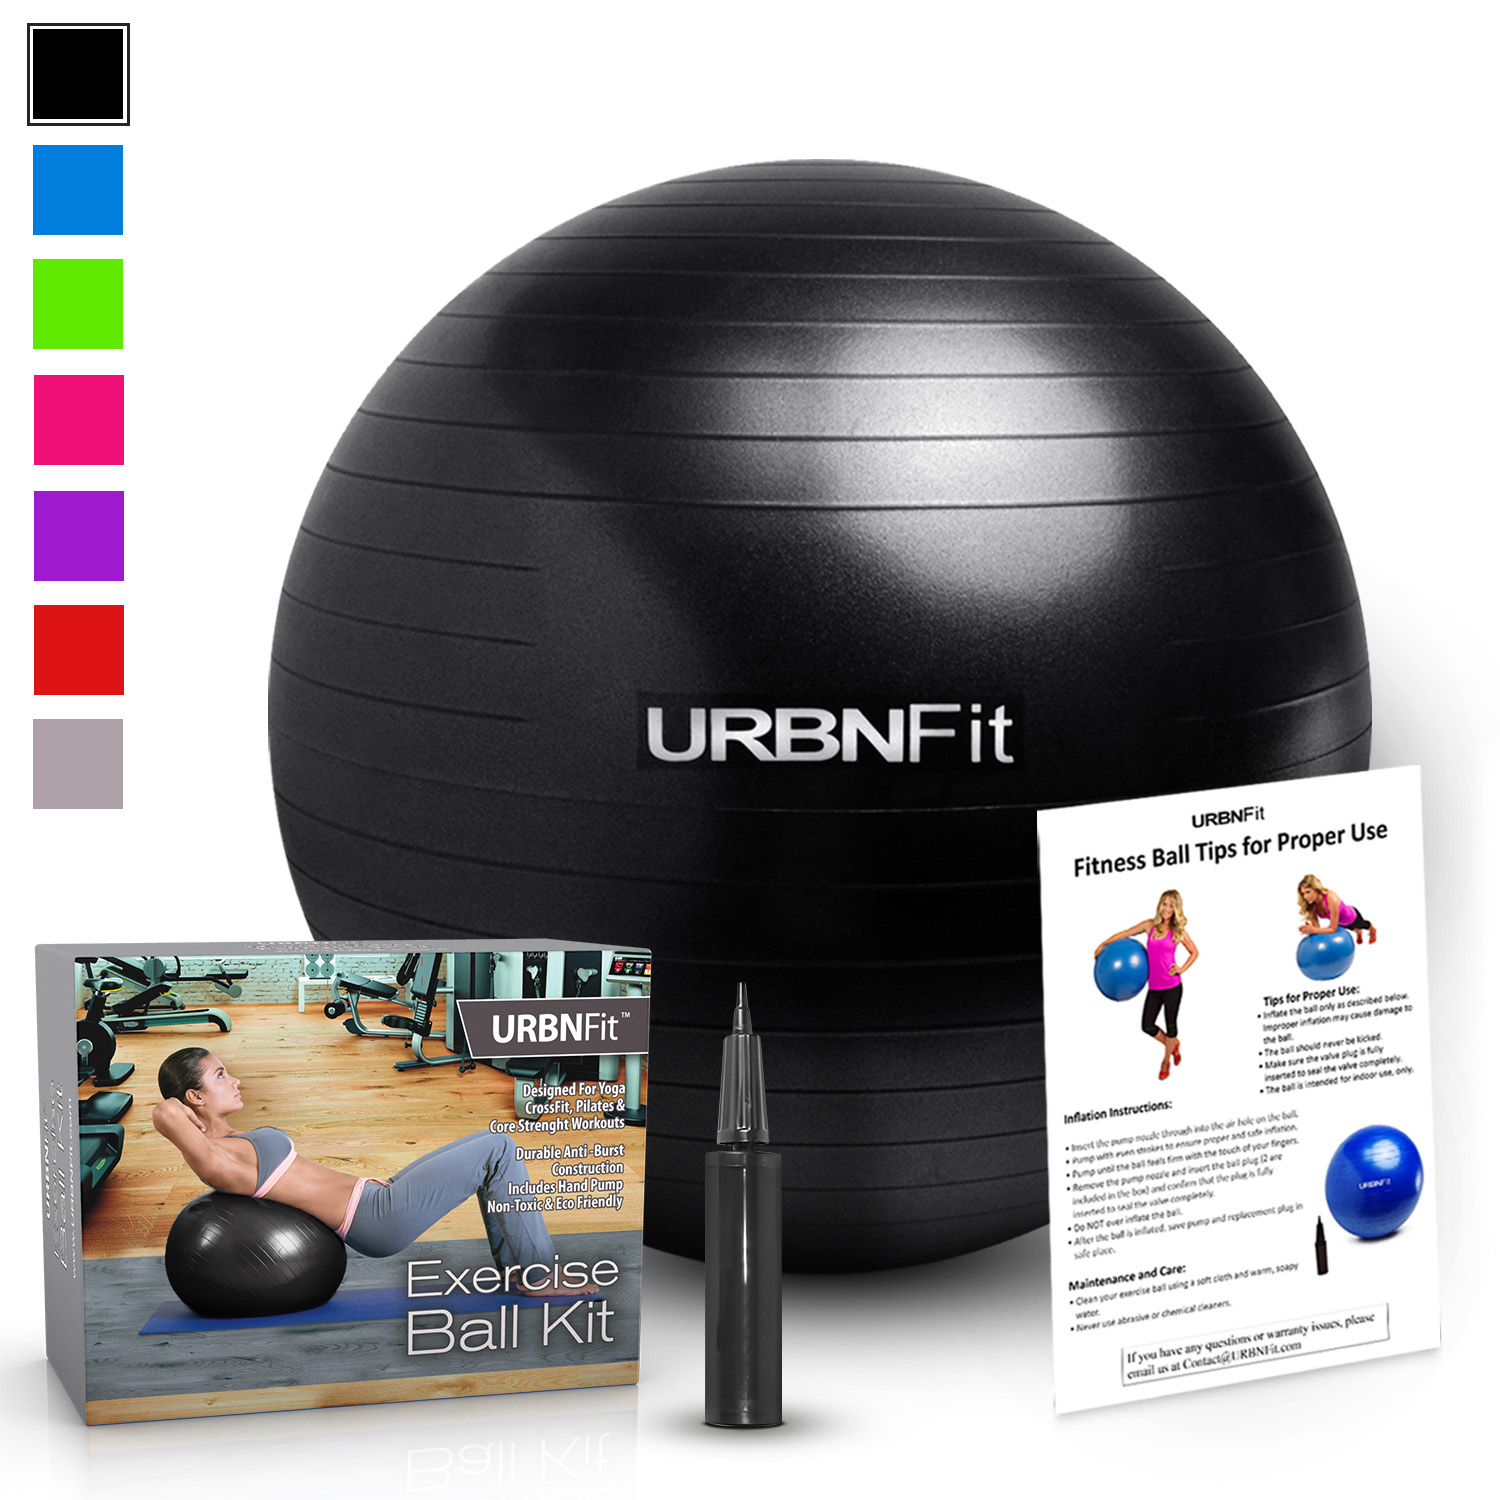 Exercise Balls For Fitness, Stability & Yoga - Workout Guide Included - 55CM / Black